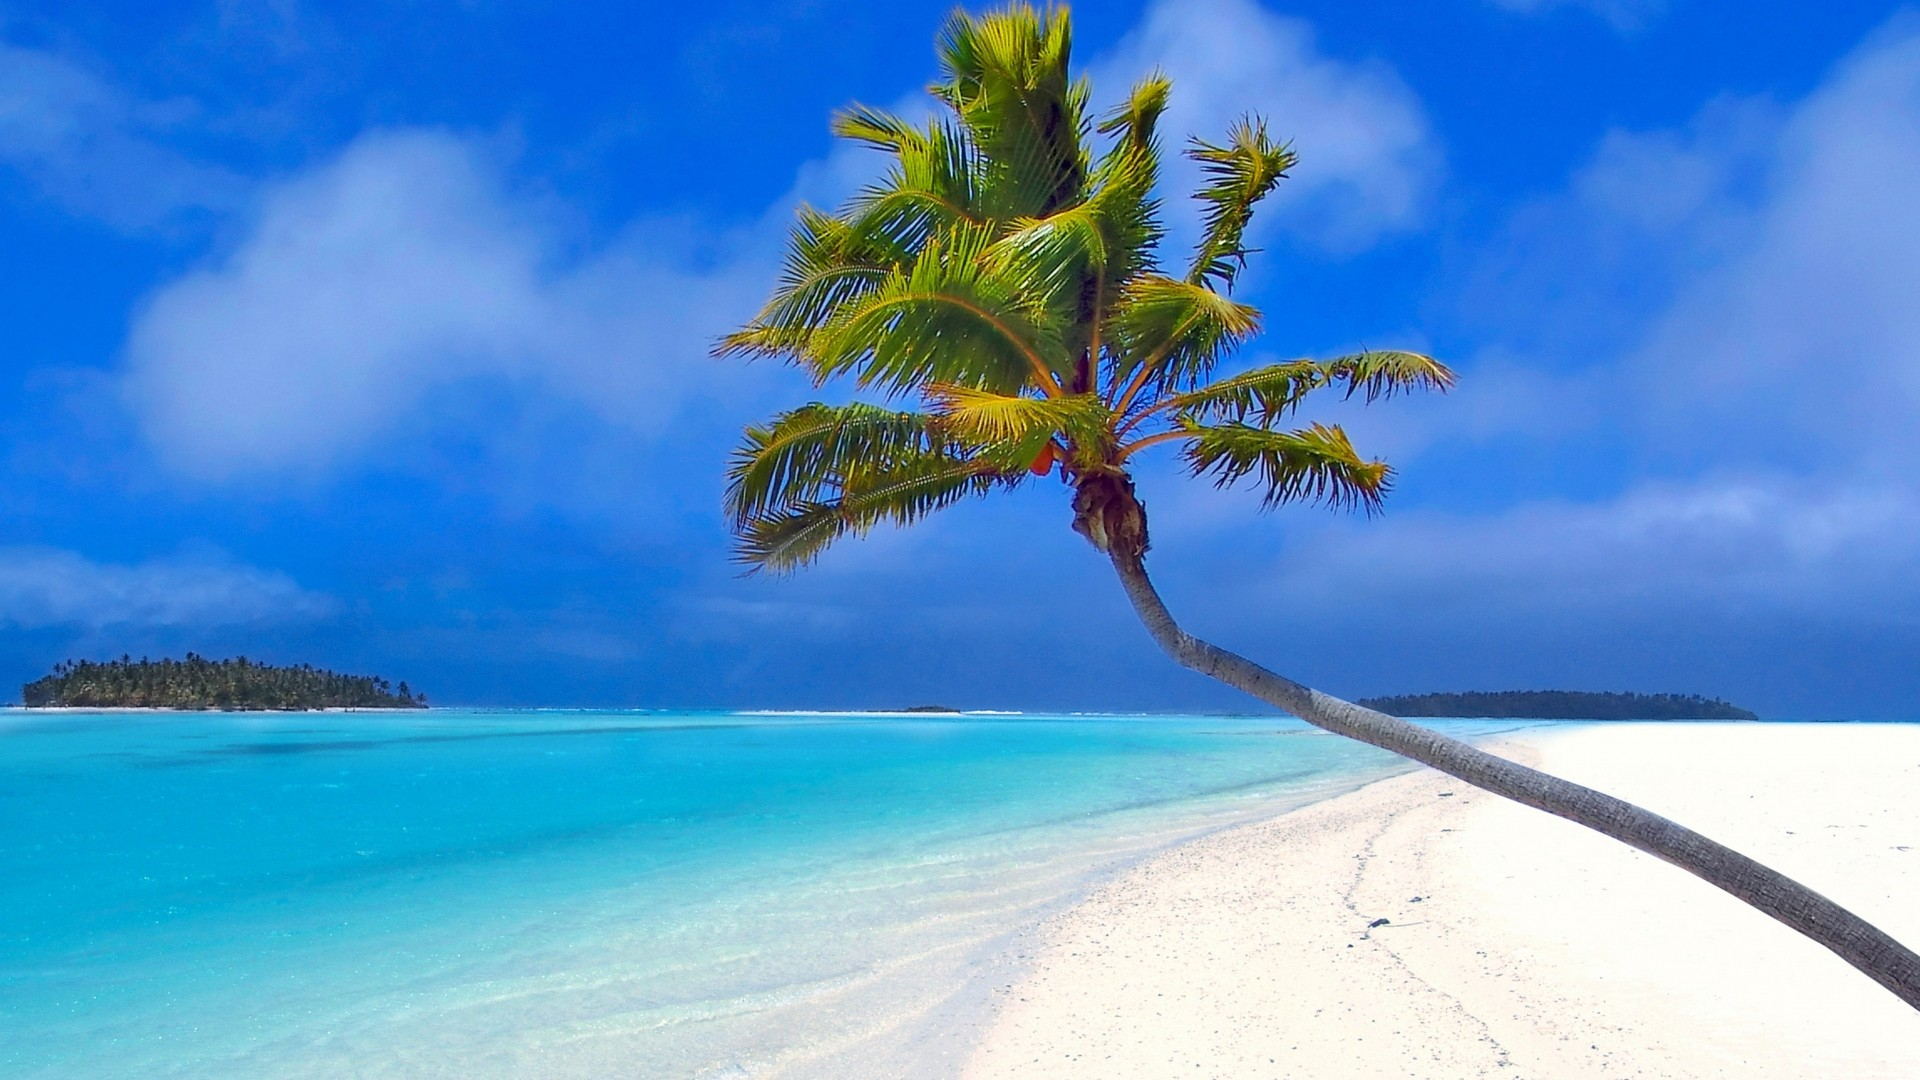 1920x1080 Preview wallpaper maldives, beach, palm trees, sand, sea